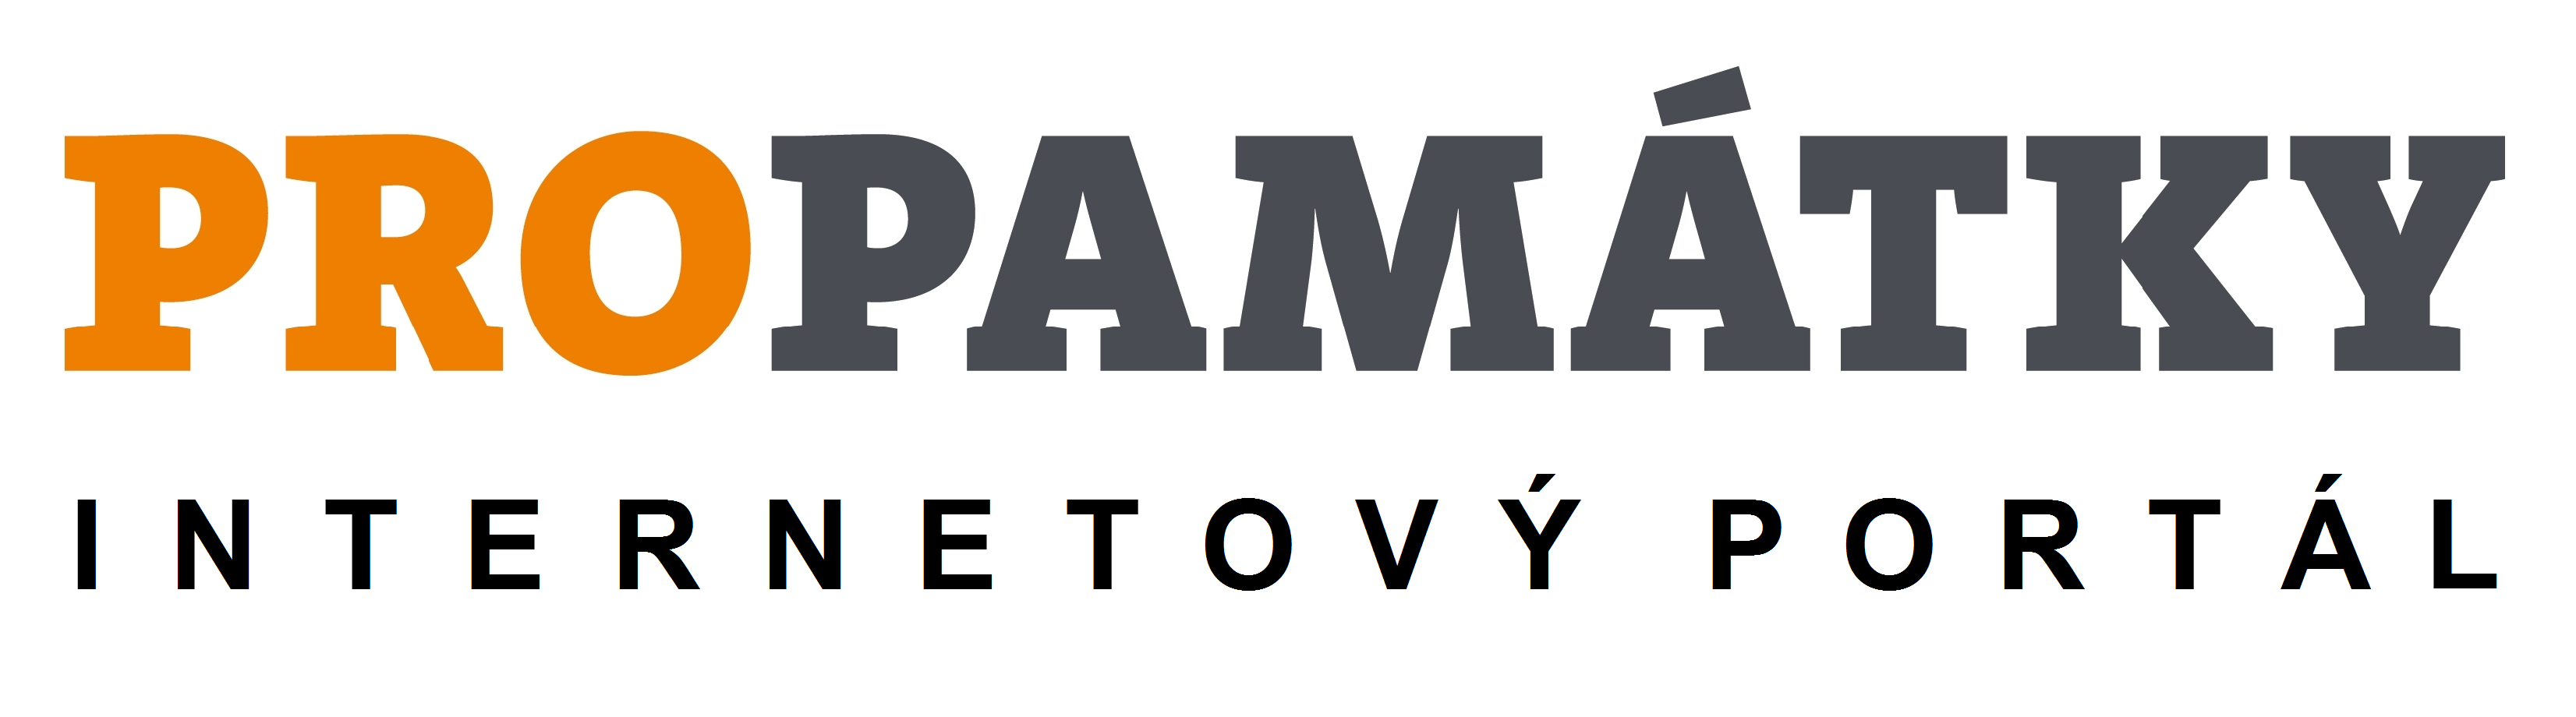 LOGO INTERNETOVY PORTAL PP final 1